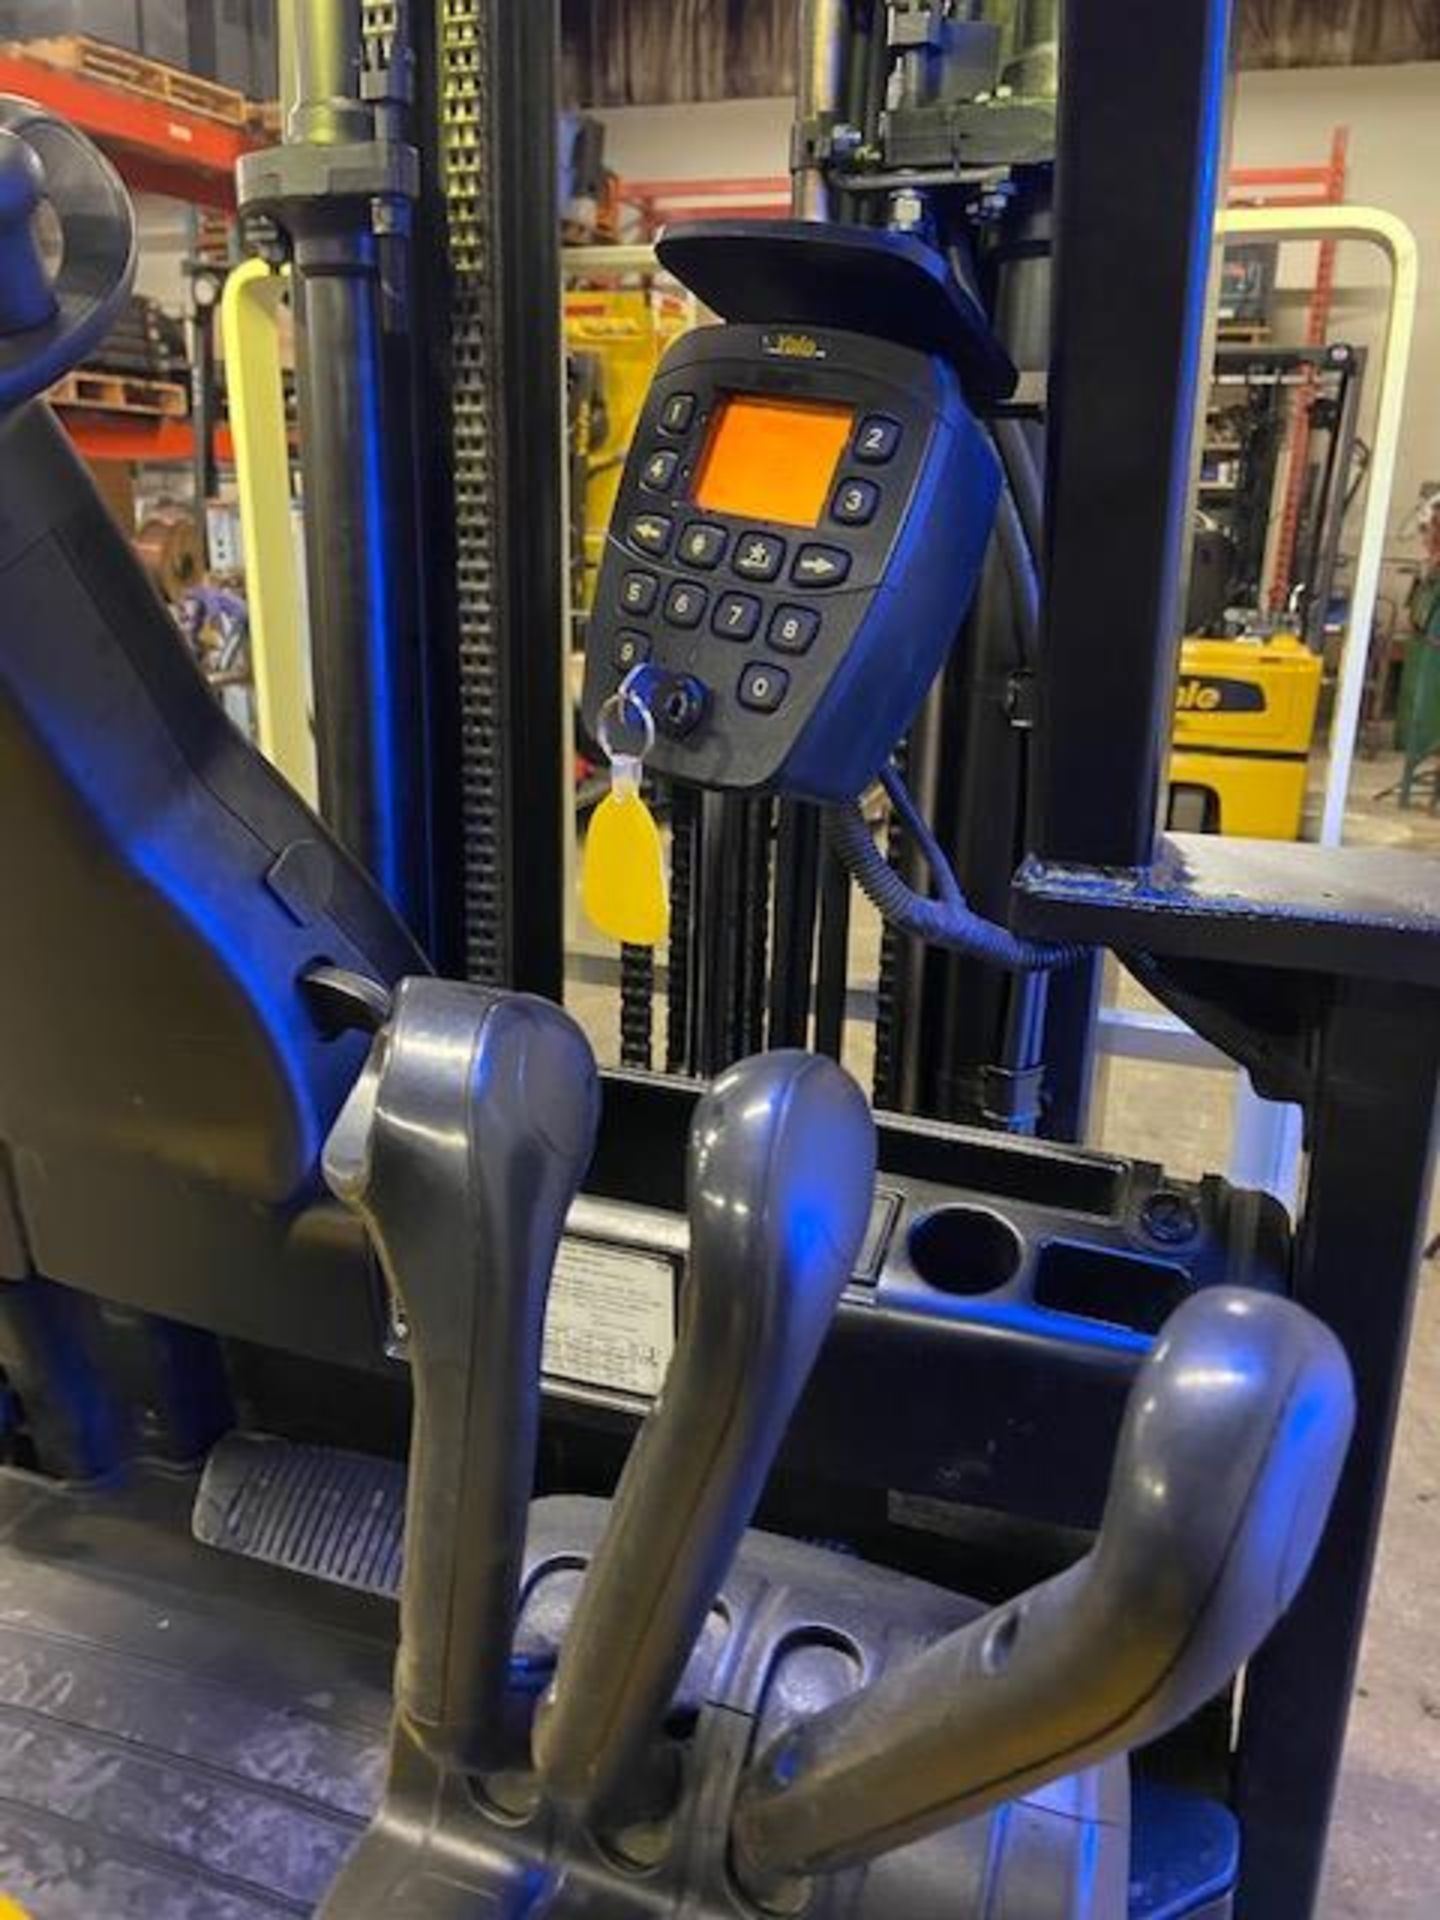 FREE CUSTOMS - 2009 Yale 5000lbs Capacity Forklift Electric with 3-STAGE MAST with sideshift - Image 2 of 3